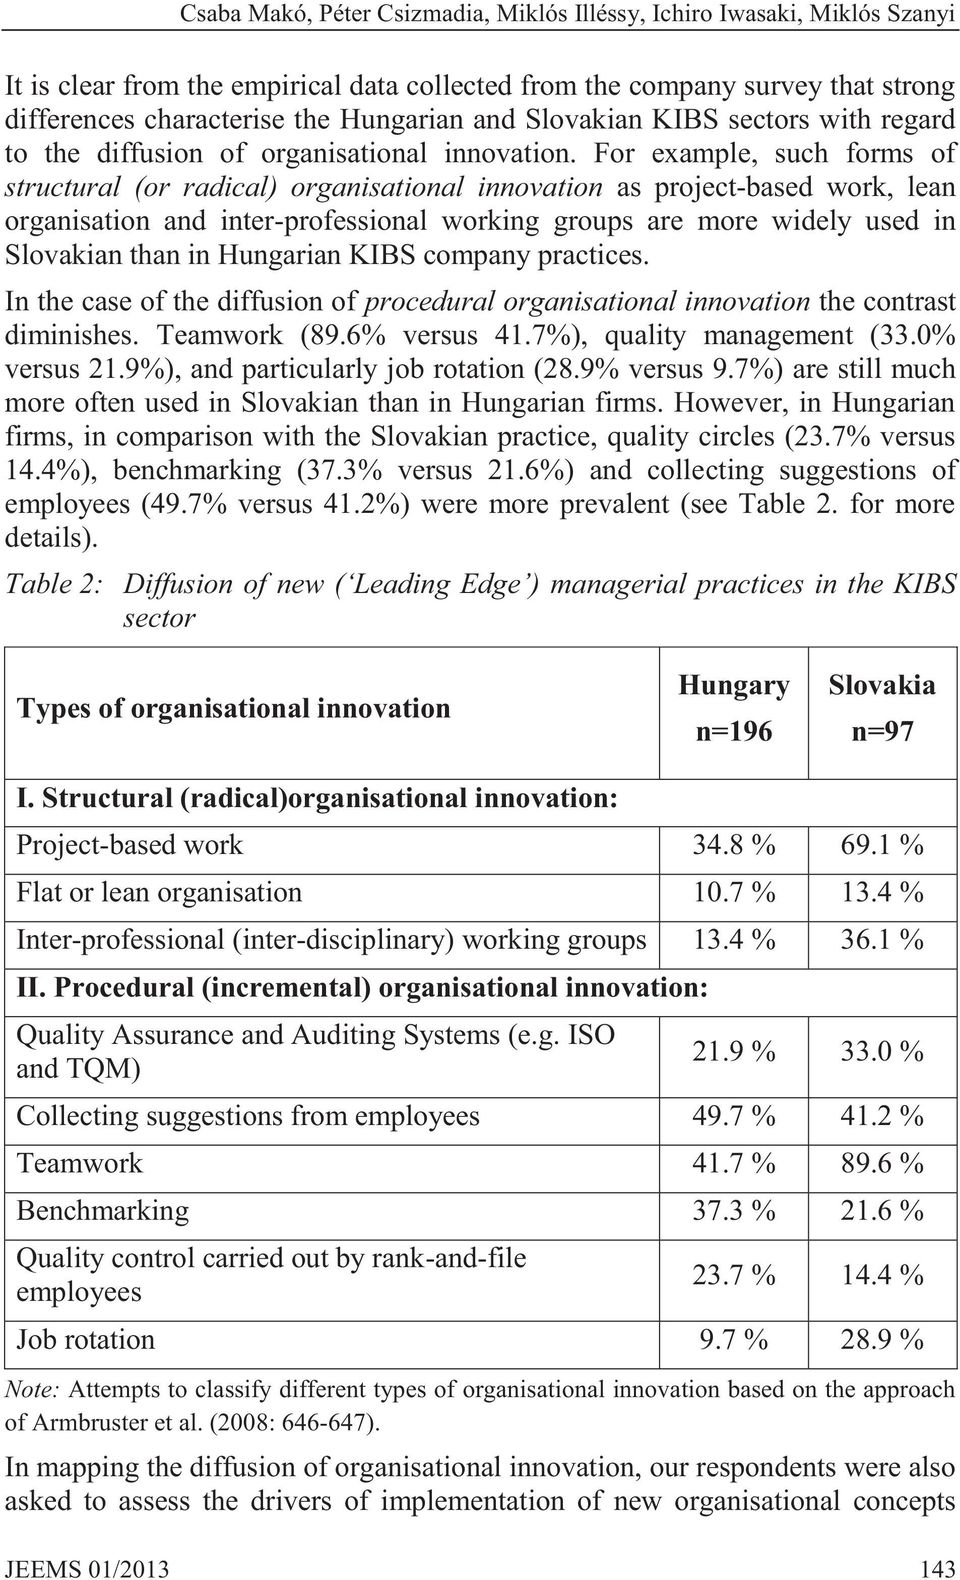 For example, such forms of structural (or radical) organisational innovation as project-based work, lean organisation and inter-professional working groups are more widely used in Slovakian than in